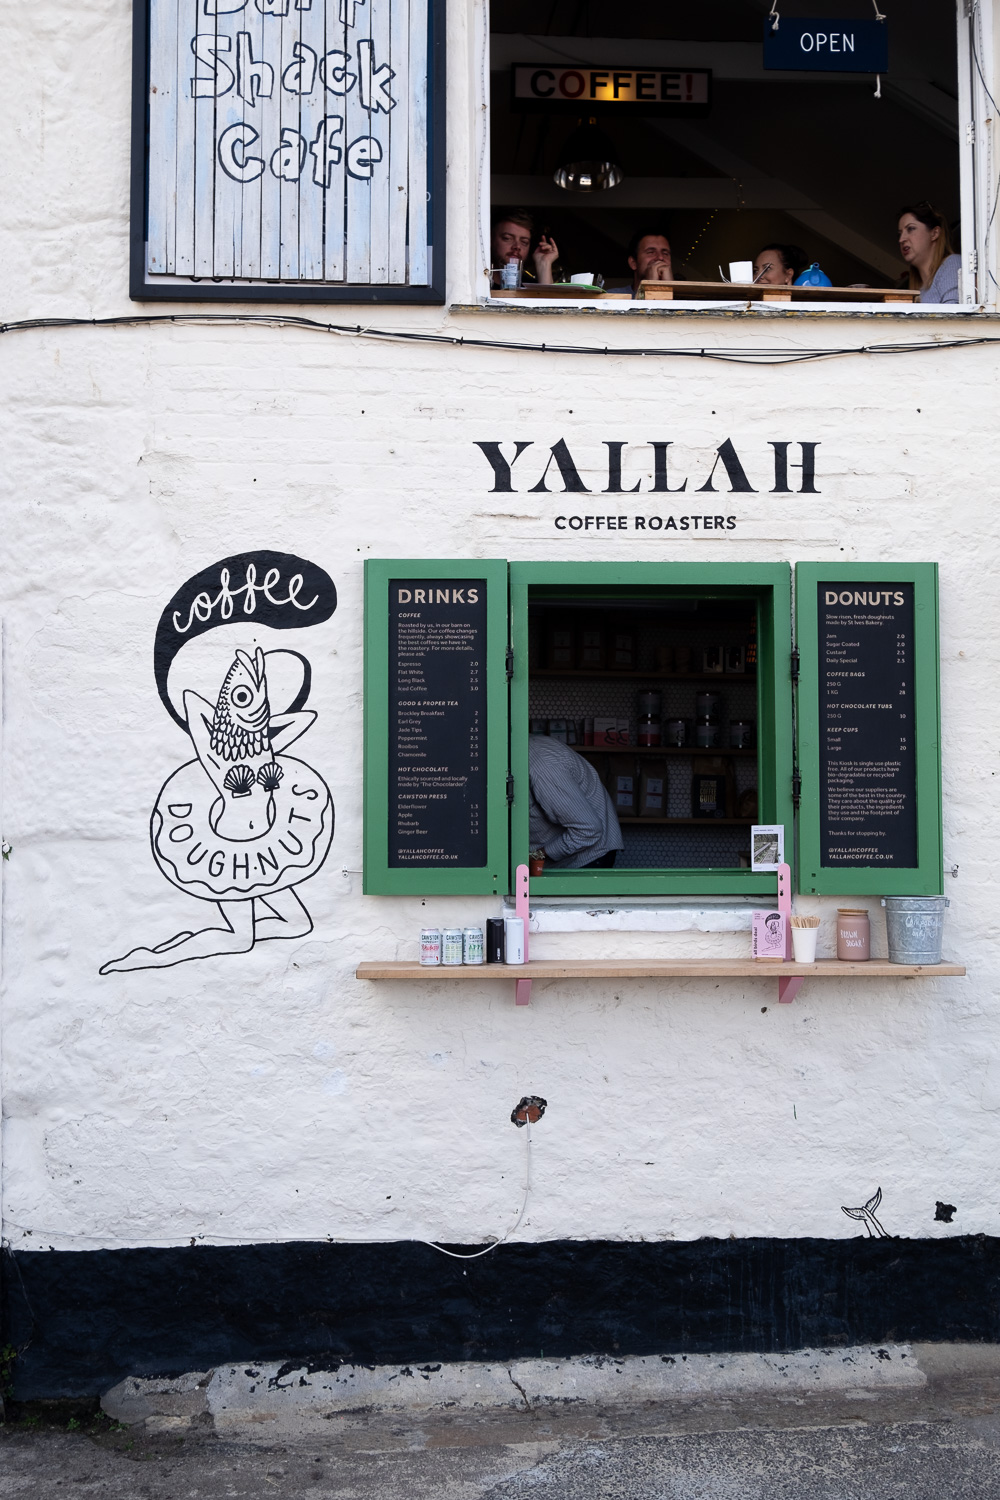 Yallah coffee roasters in St Ives | A 5-day guide to beautiful Cornwall by Mondomulia